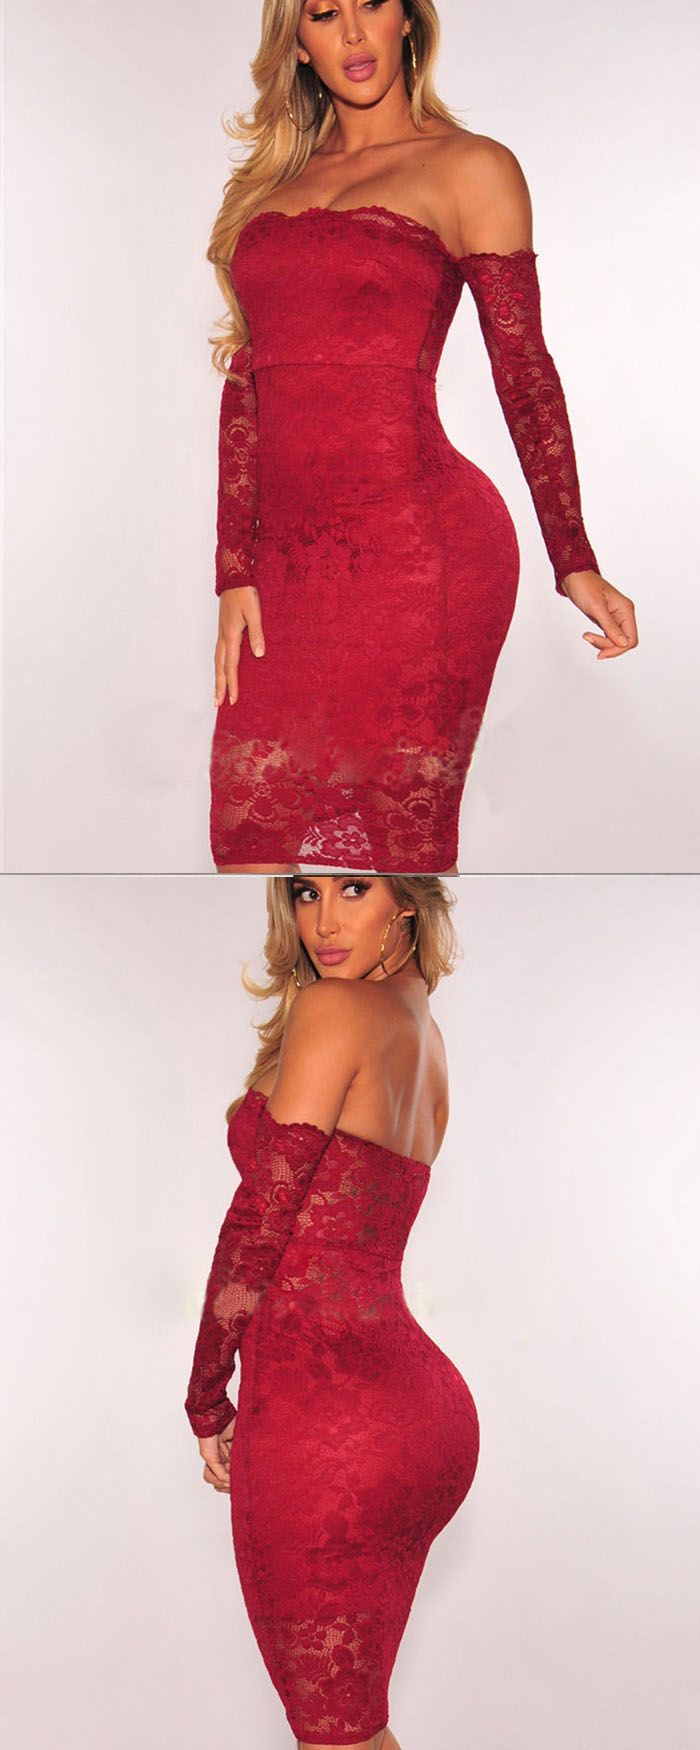 219be5c4870 Strapless Red Lace Bodycon Knee Length Clut Dress with Long Sleeves ...